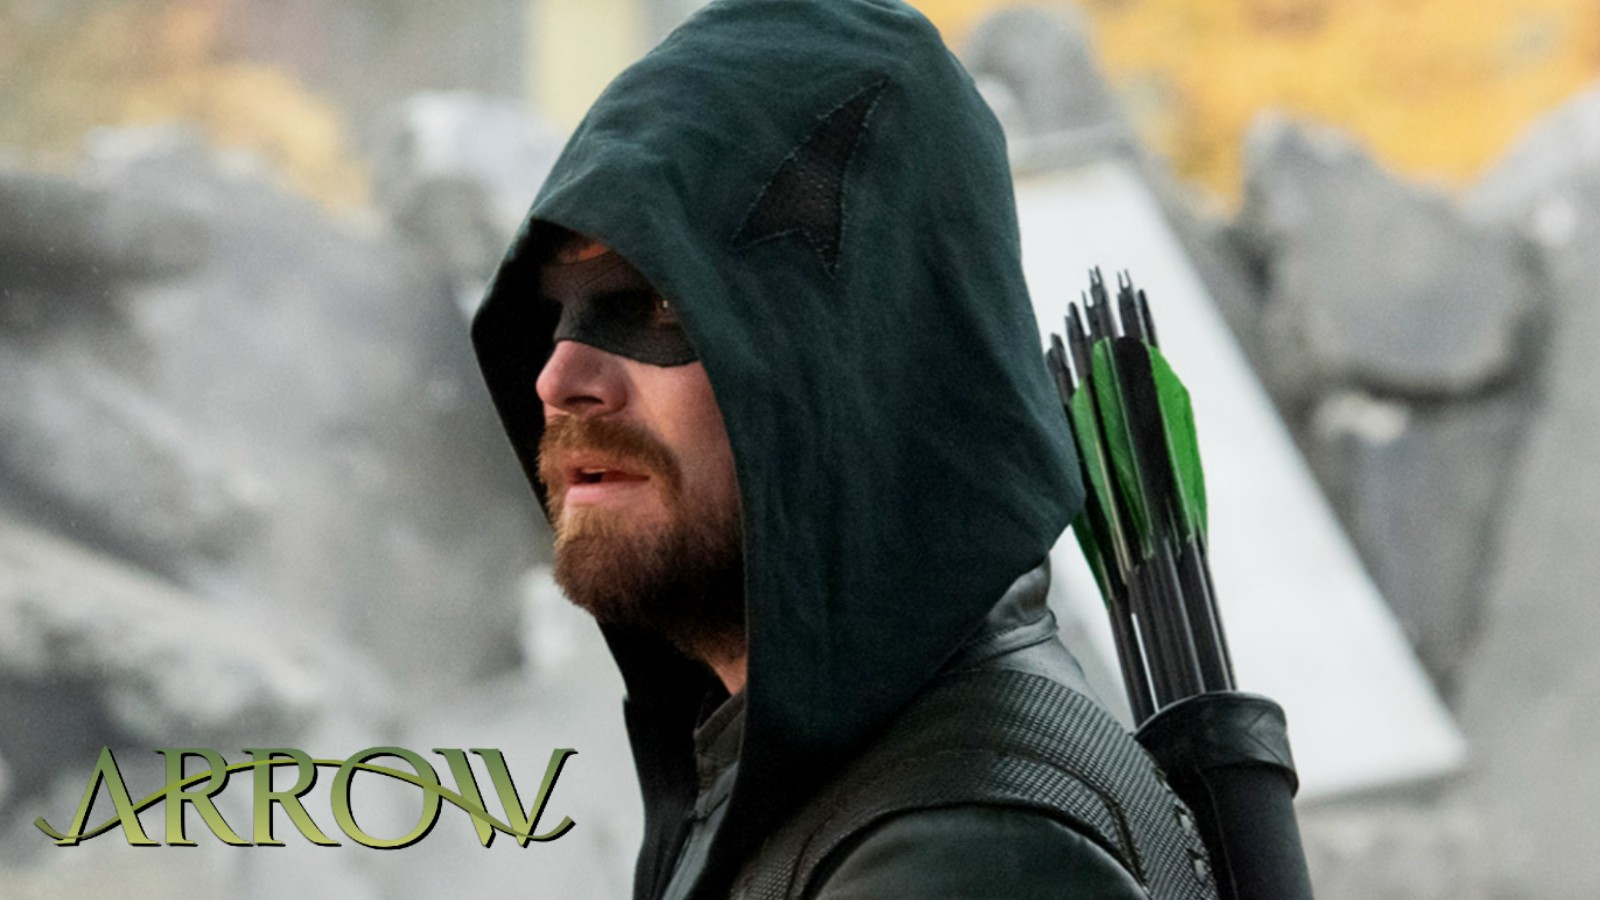 Stephen Amell in The CW's Arrow